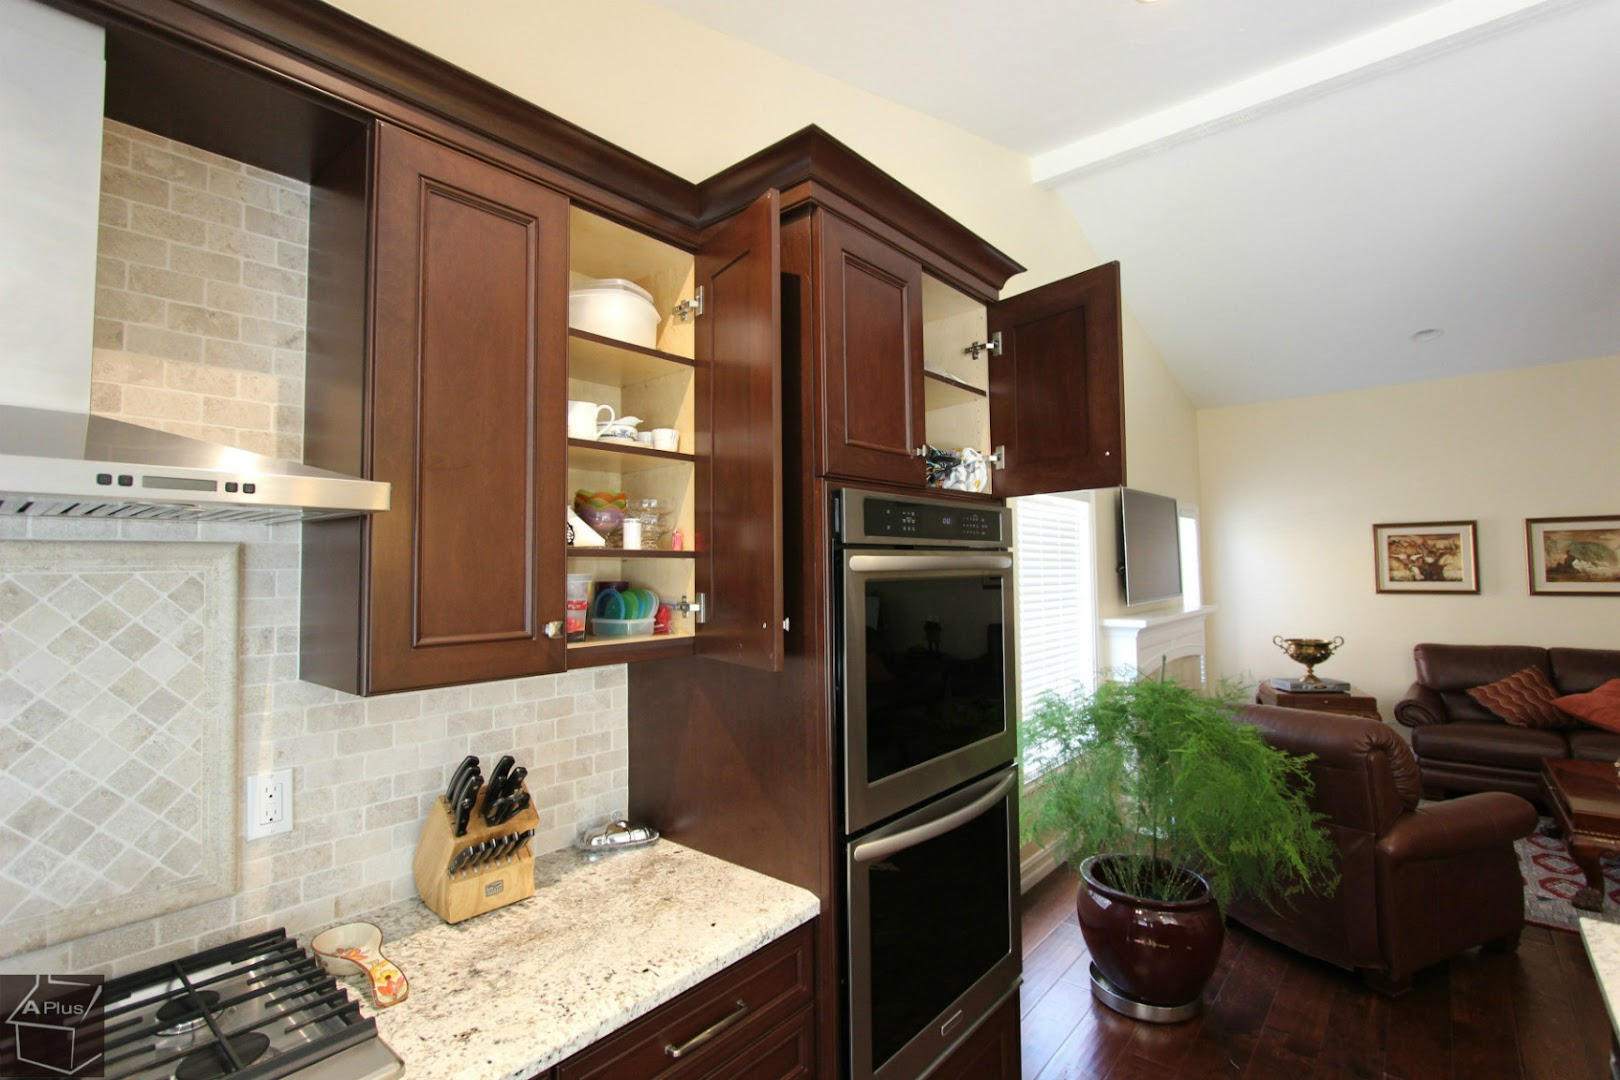 59 Huntington Beach Complete House Remodel Along With Brand New Custom Cabinets